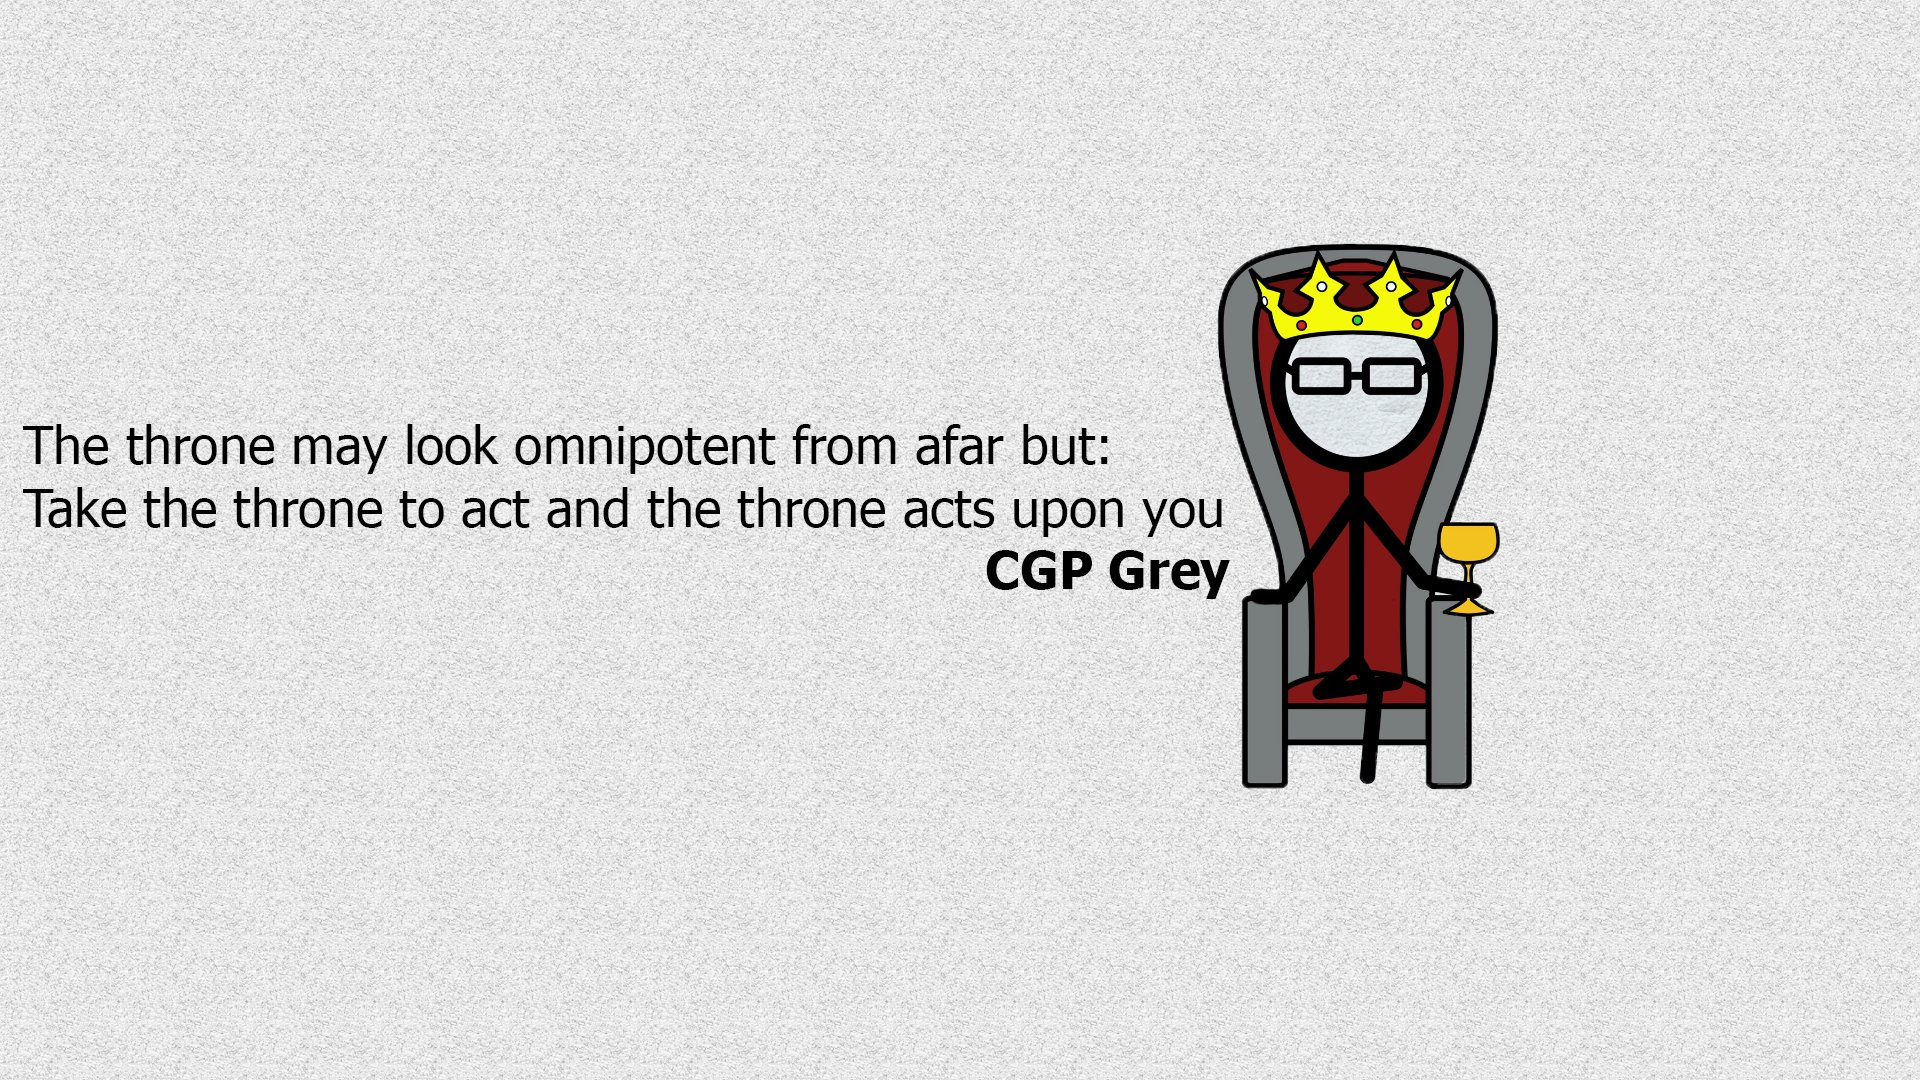 Took the throne to act and the throne acts upon you. – CGP Grey (1920×1080)